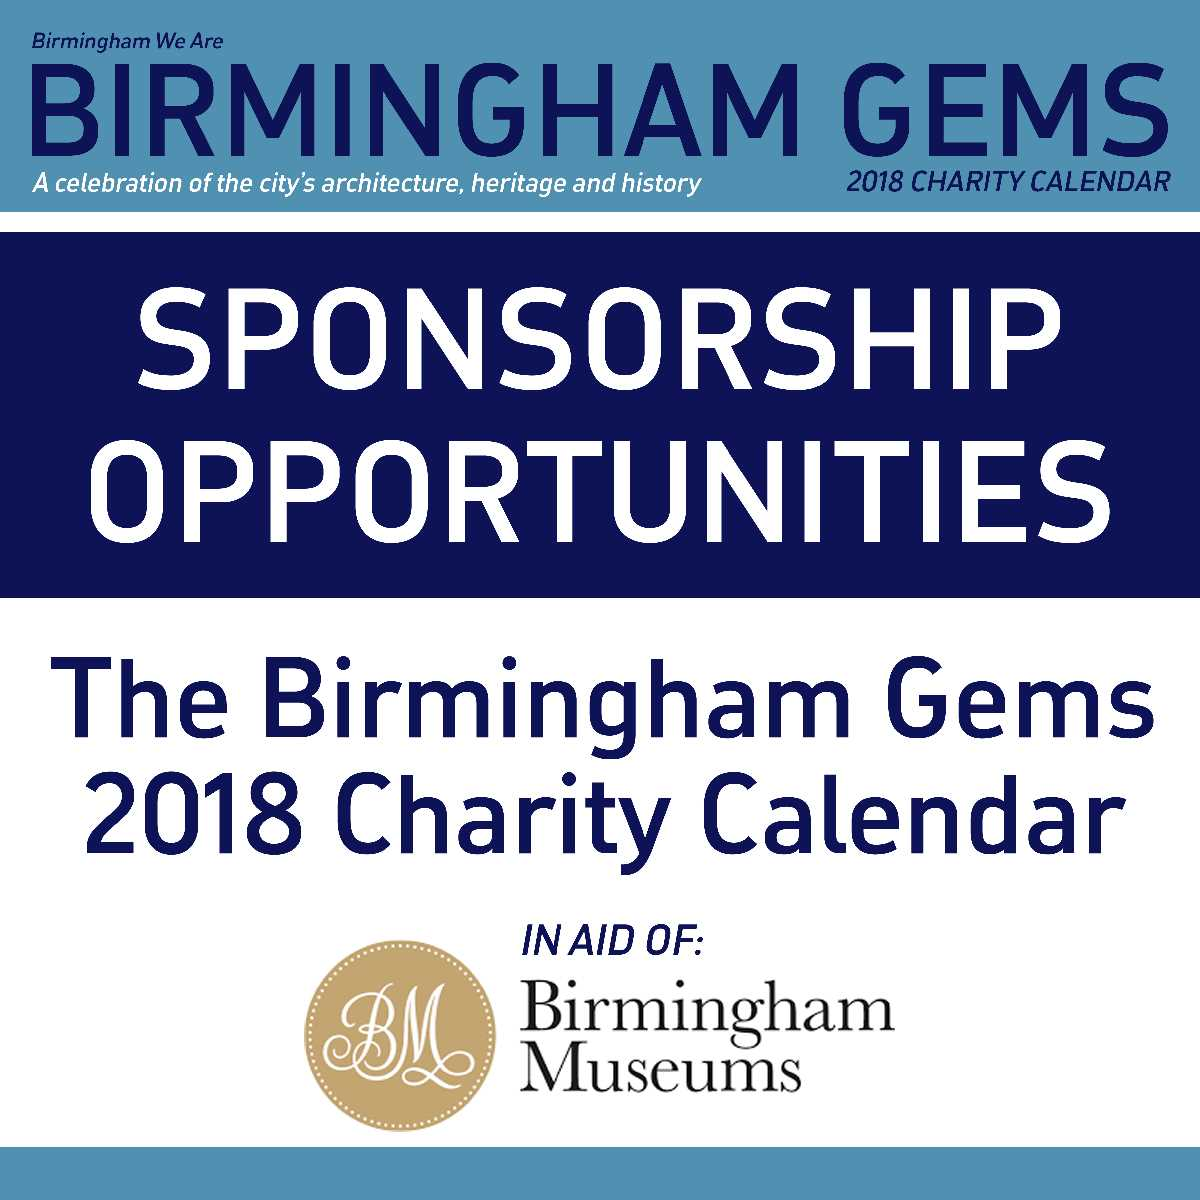 Birmingham+Gems+2018+calendar+for+charity